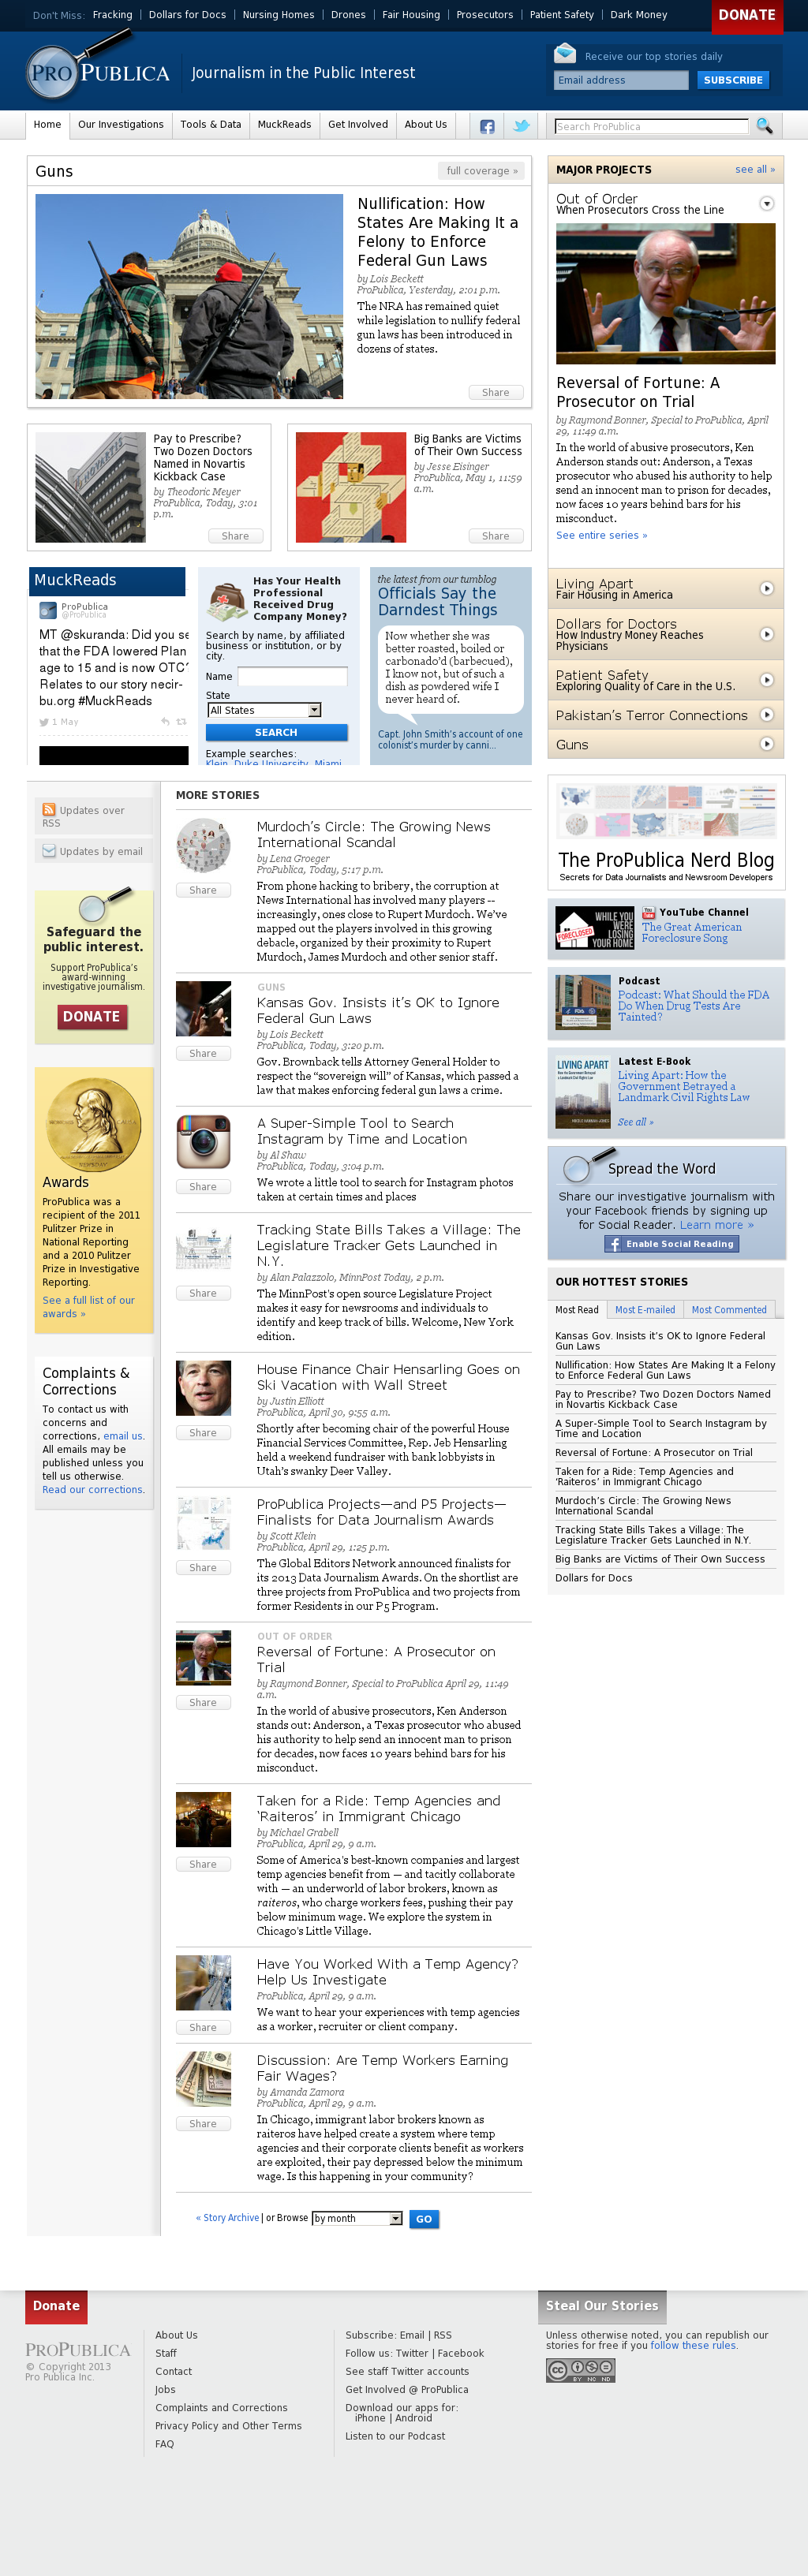 ProPublica at Saturday May 4, 2013, 1:23 a.m. UTC